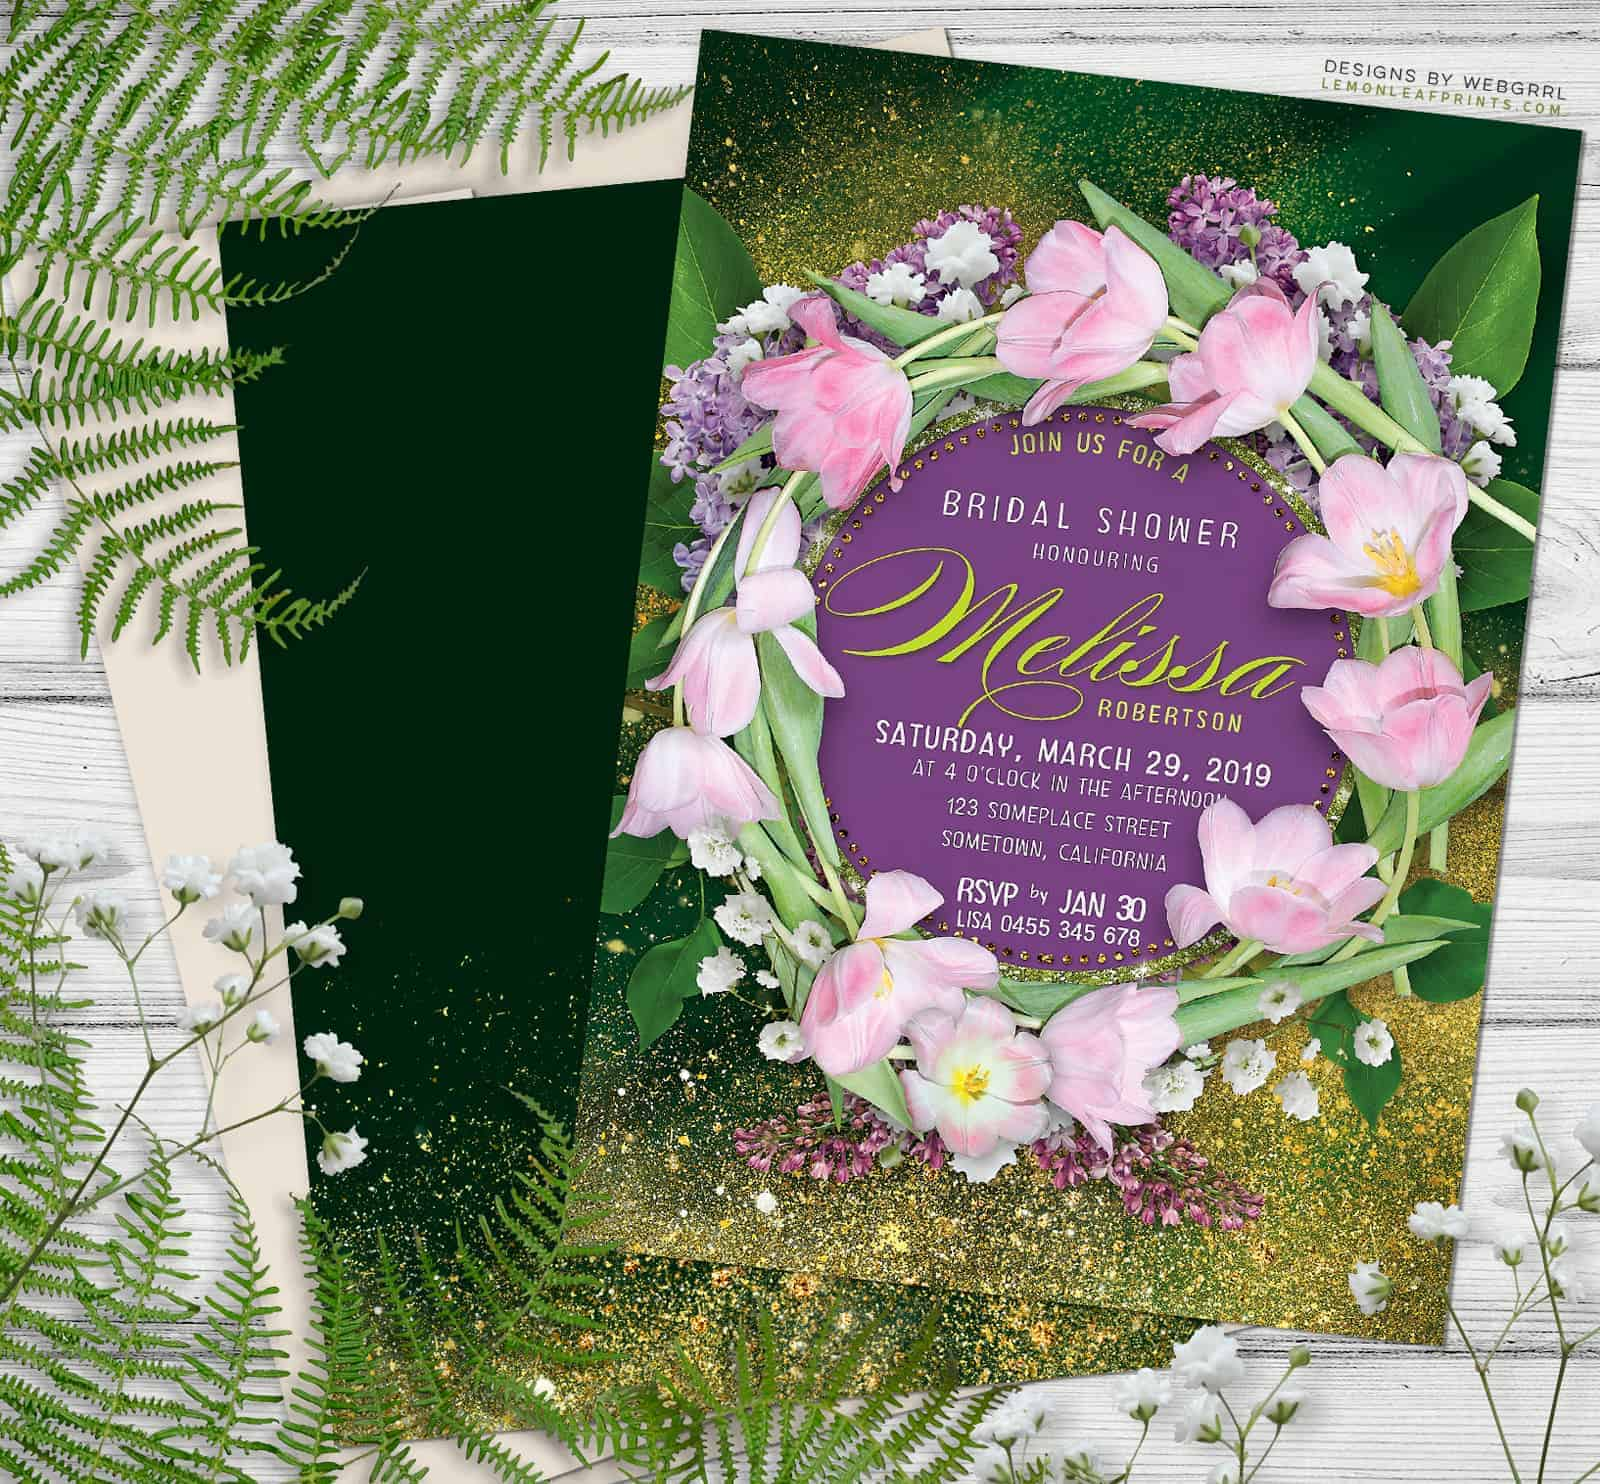 Floral Wreath Bridal Shower Invitation featuring pink tulips and Baby's Breath by Webgrrl